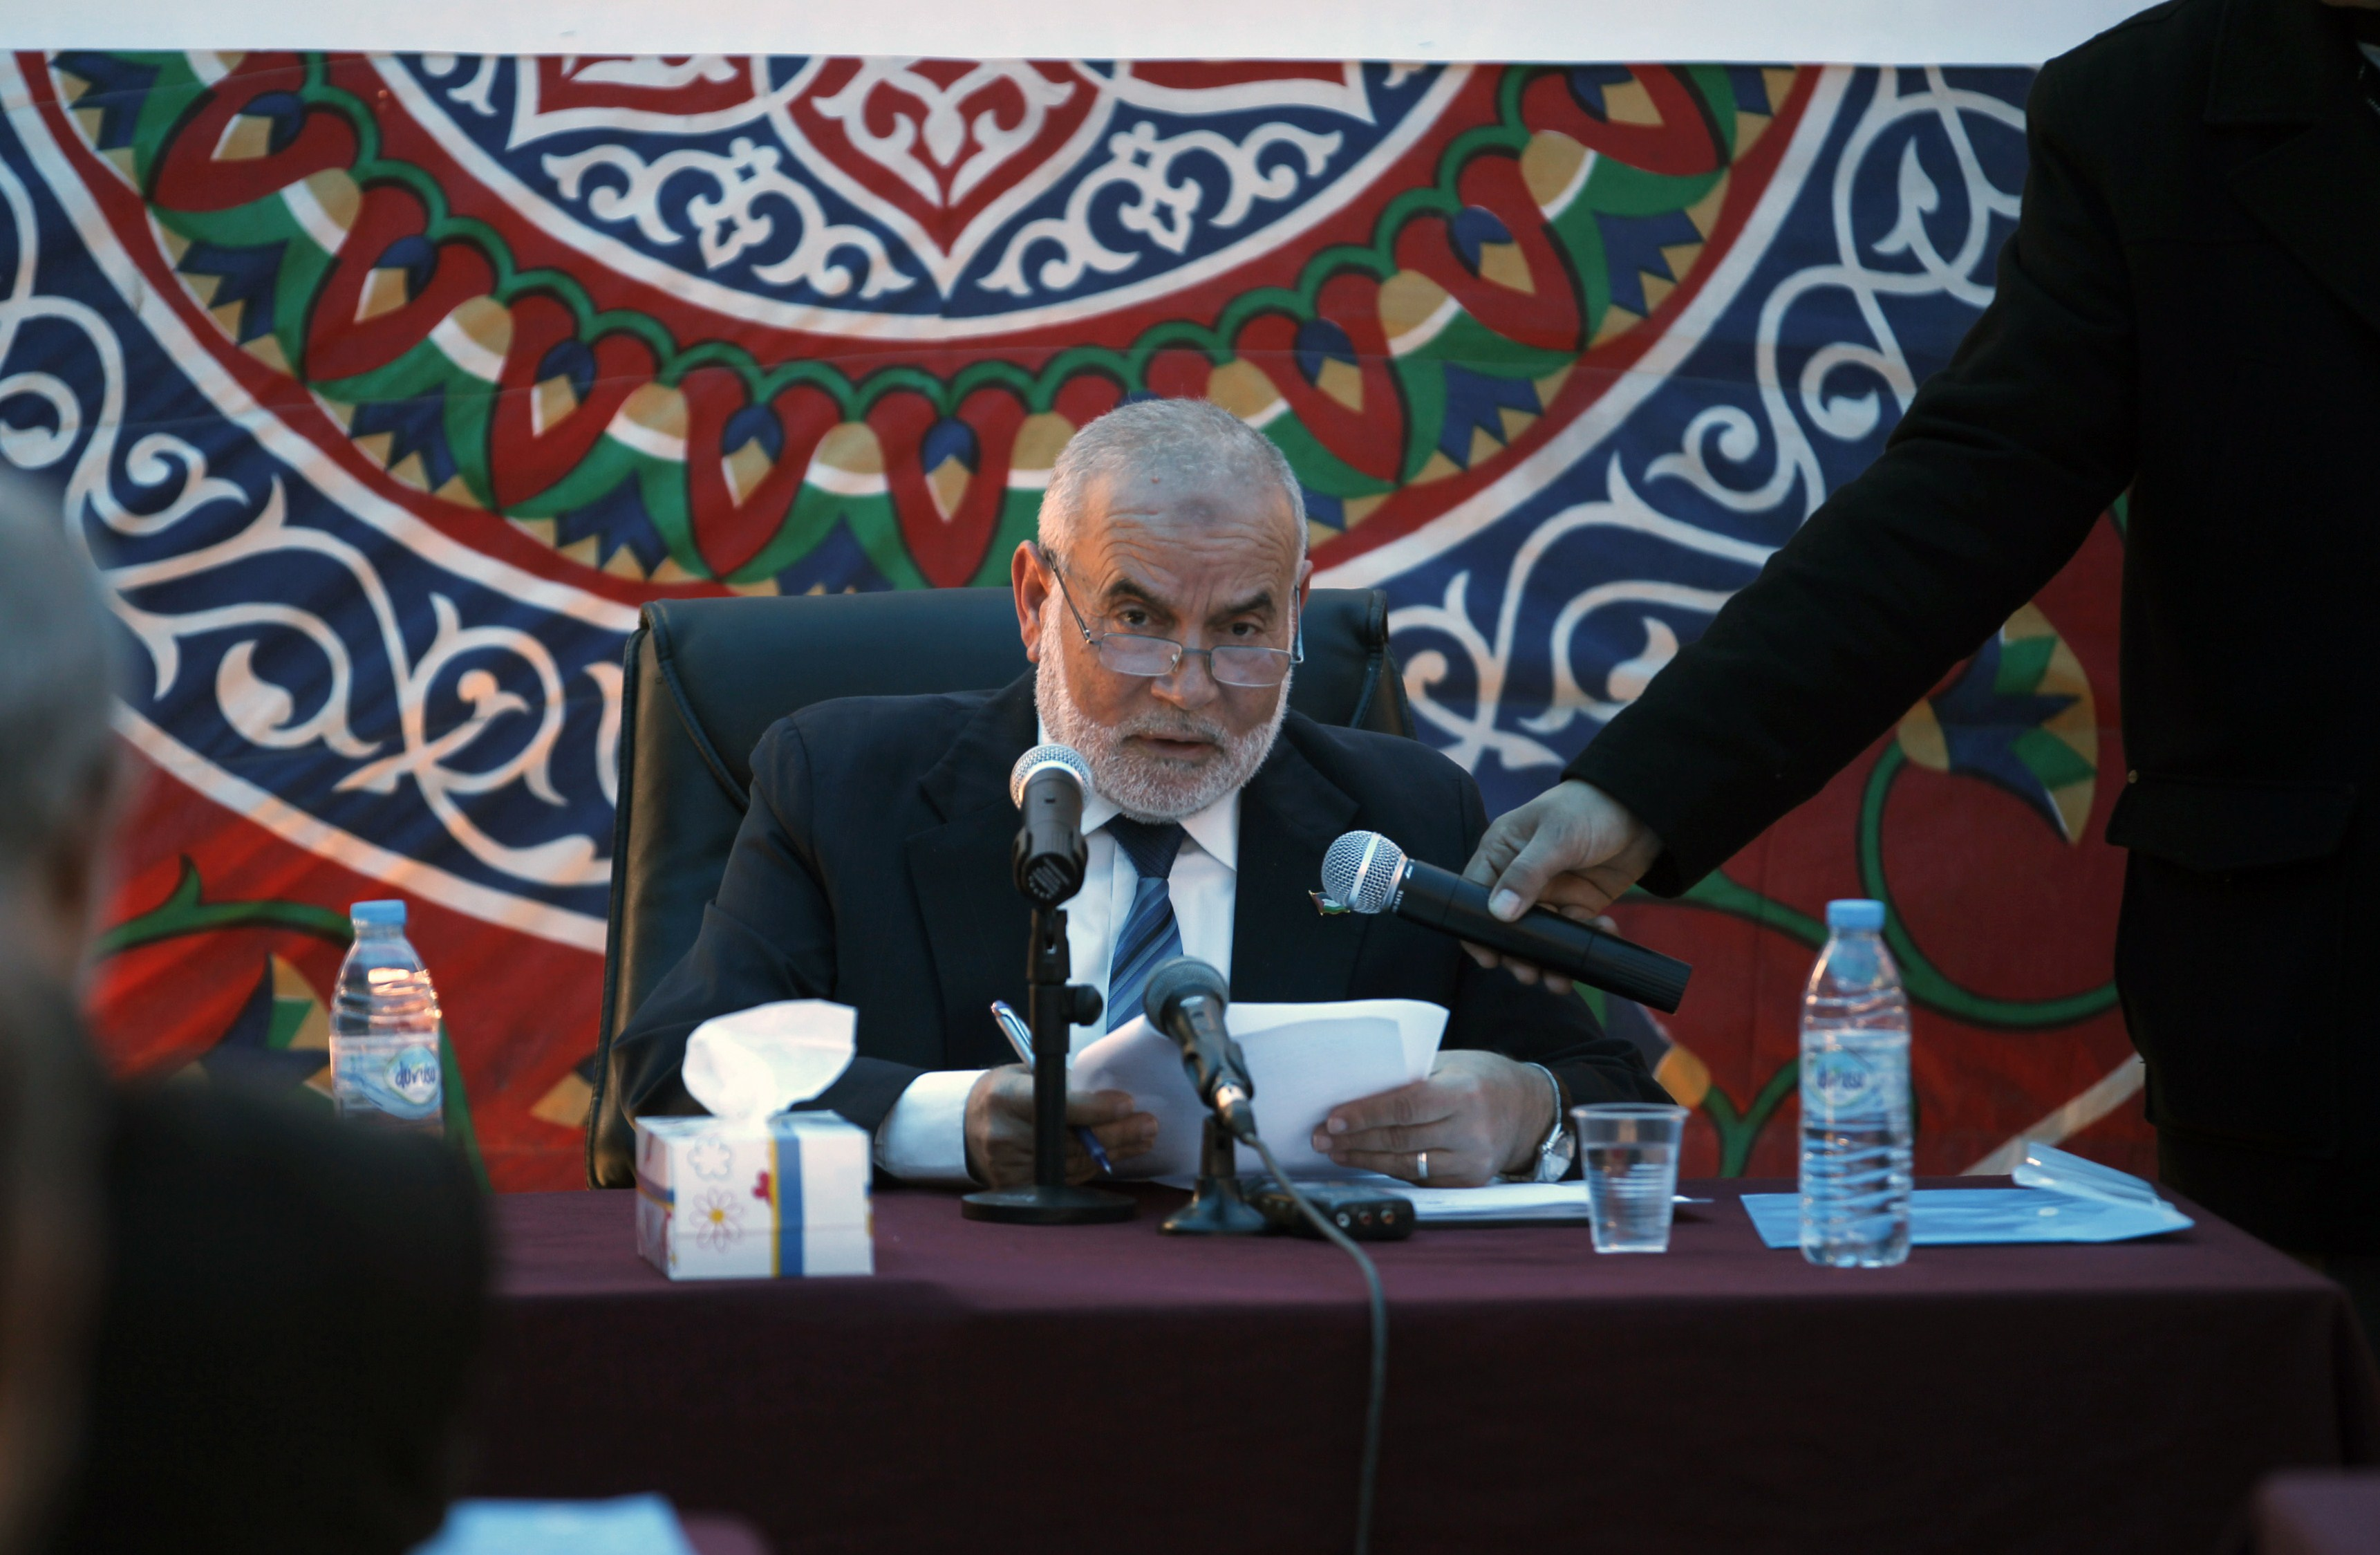 Ahmad Bahar, deputy parliament speaker and Hamas member, speaks during a special session, attended by Hamas MPs, in a tent at Rafah on February 23, 2014, to demand that Egypt lift border crossing restrictions. Egypt imposed the restrictions as part of a campaign by its security forces against jihadists in the lawless Sinai Peninsula, which borders Gaza and Israel.  (AFP PHOTO / SAID KHATIB)